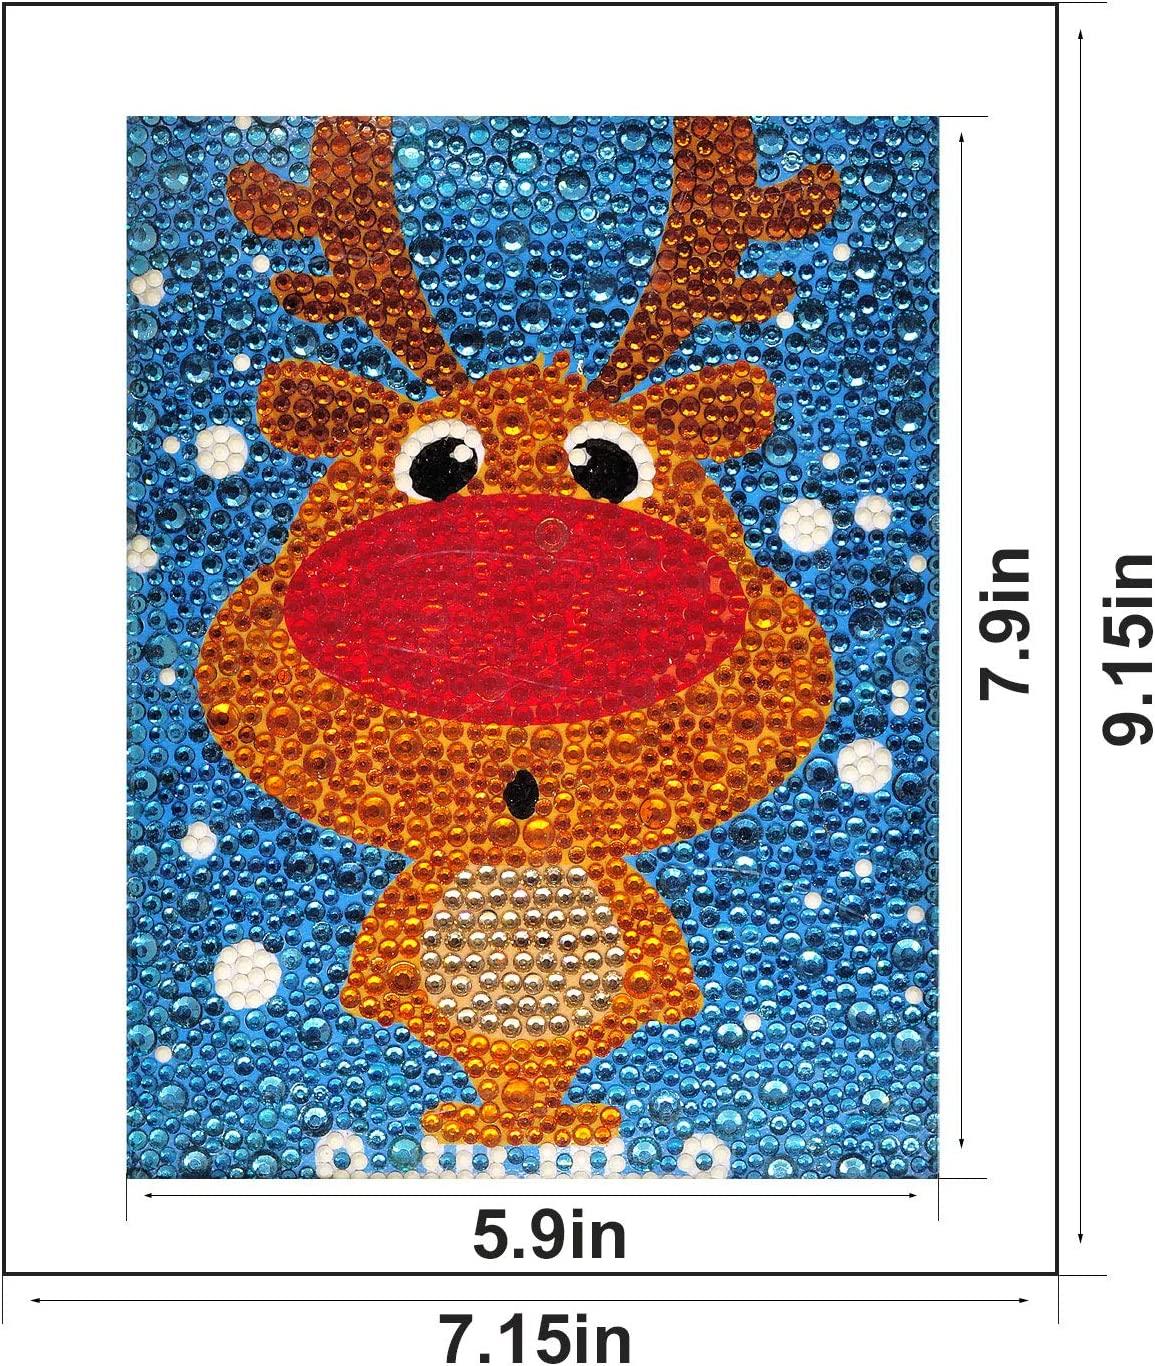 Caferria 5D Diamond Painting Kit for Kids Easy and Small DIY Full Drill Painting by Number Kits Best Gift for Children Rhinestone Embroidery Home Wall Decor with Wooden Frame Dolphin